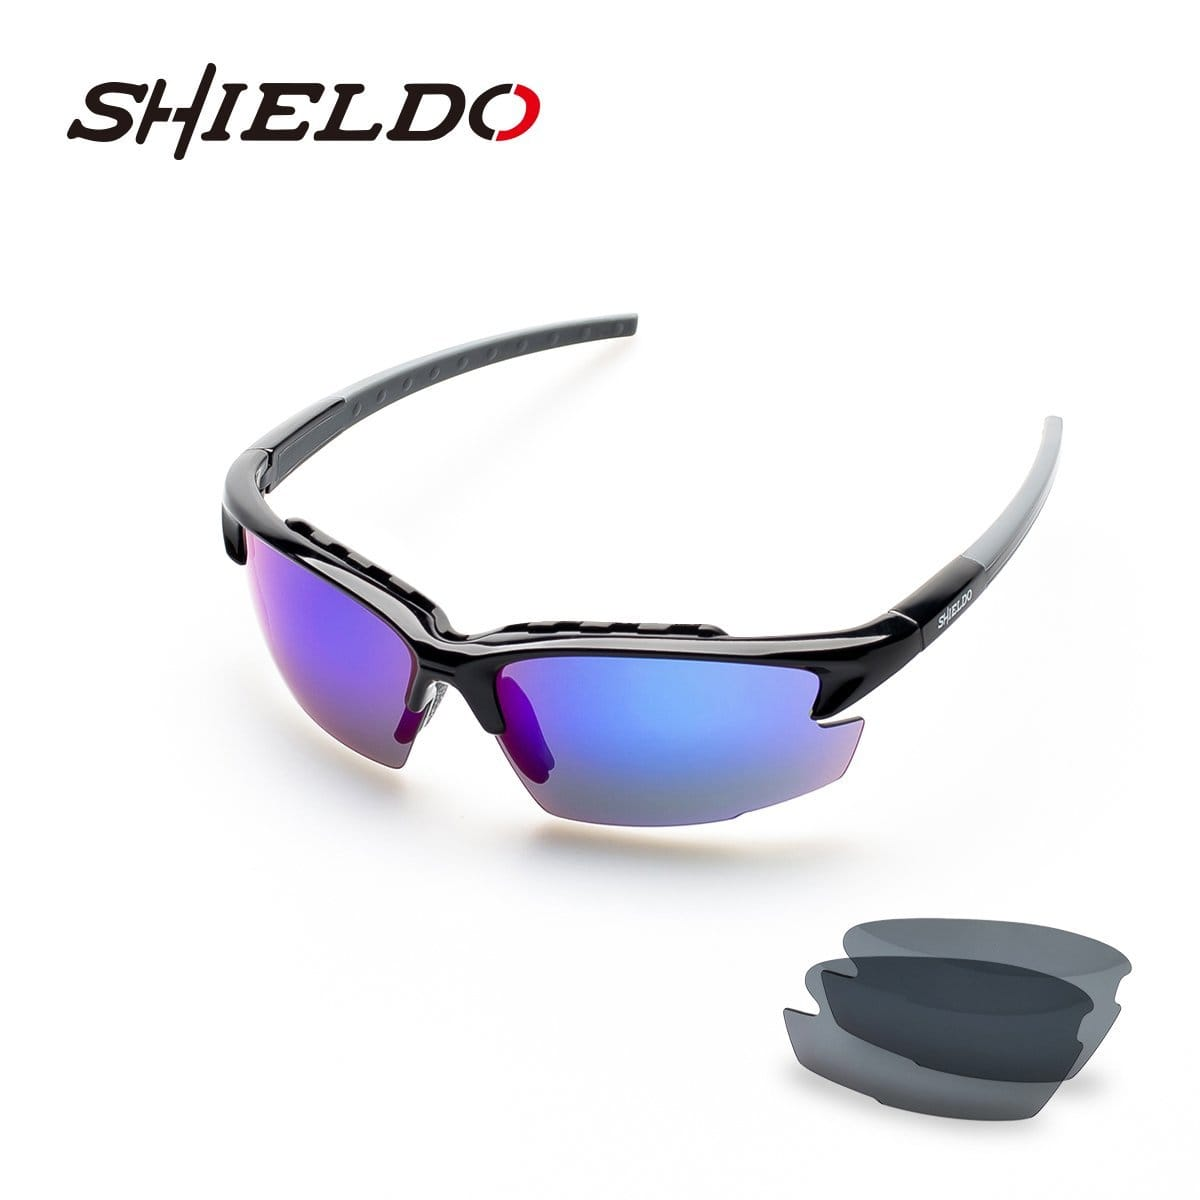 SUNGLASSES polarized interchangeable lenses (by SHIELDO) $15.99 AC sports fishing running 47% OFF golf cycling FREE SHIPPING (prime or FSSS) @ amazon